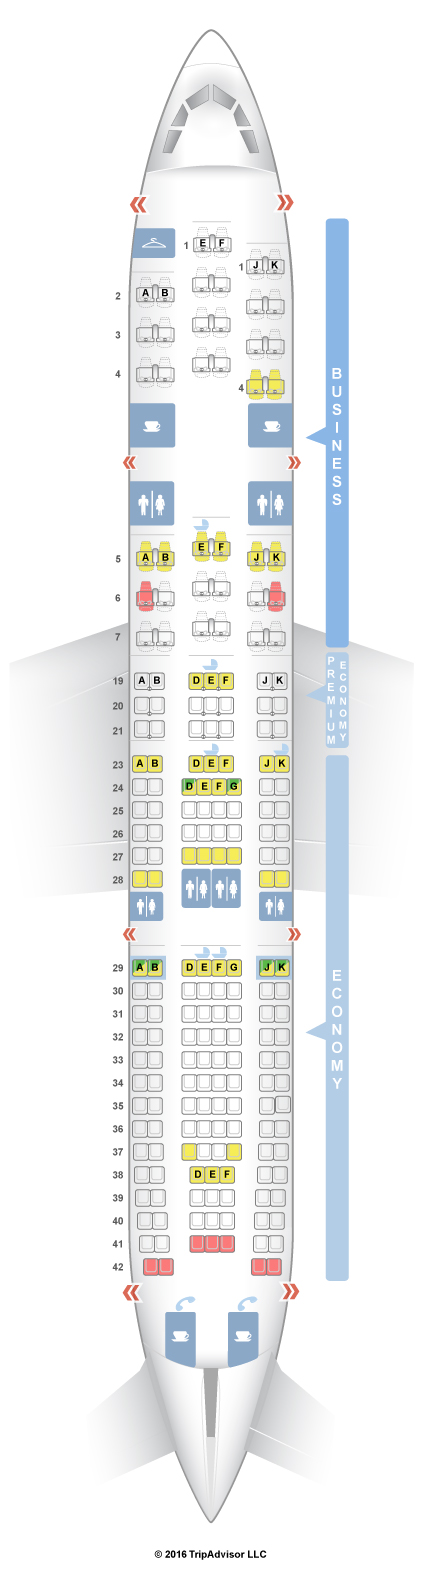 Seatguru seat map air france airbus a330 200 332 for Air france vol interieur